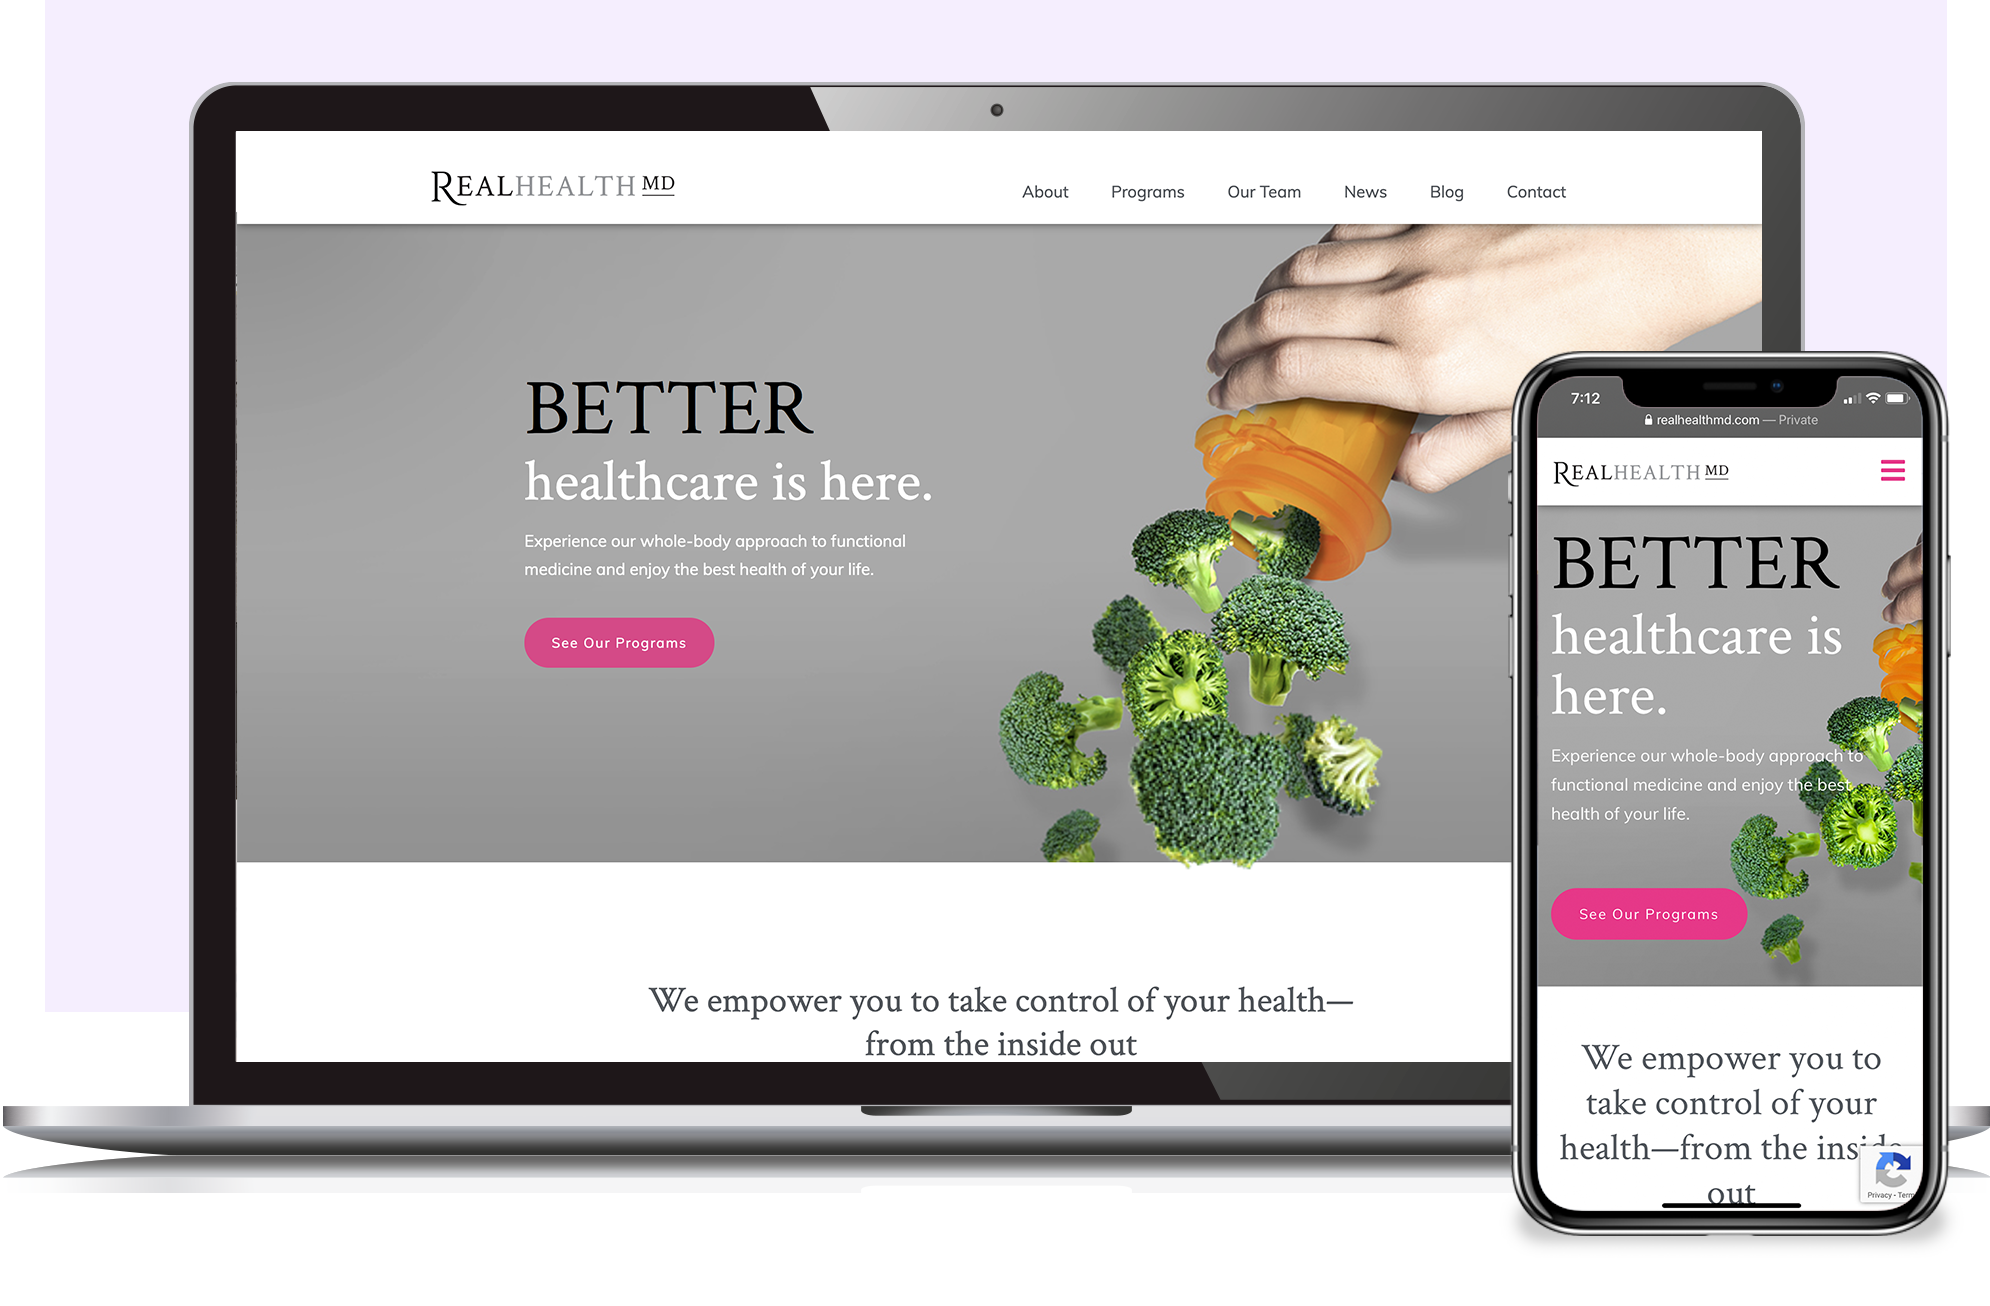 Real Health MD website